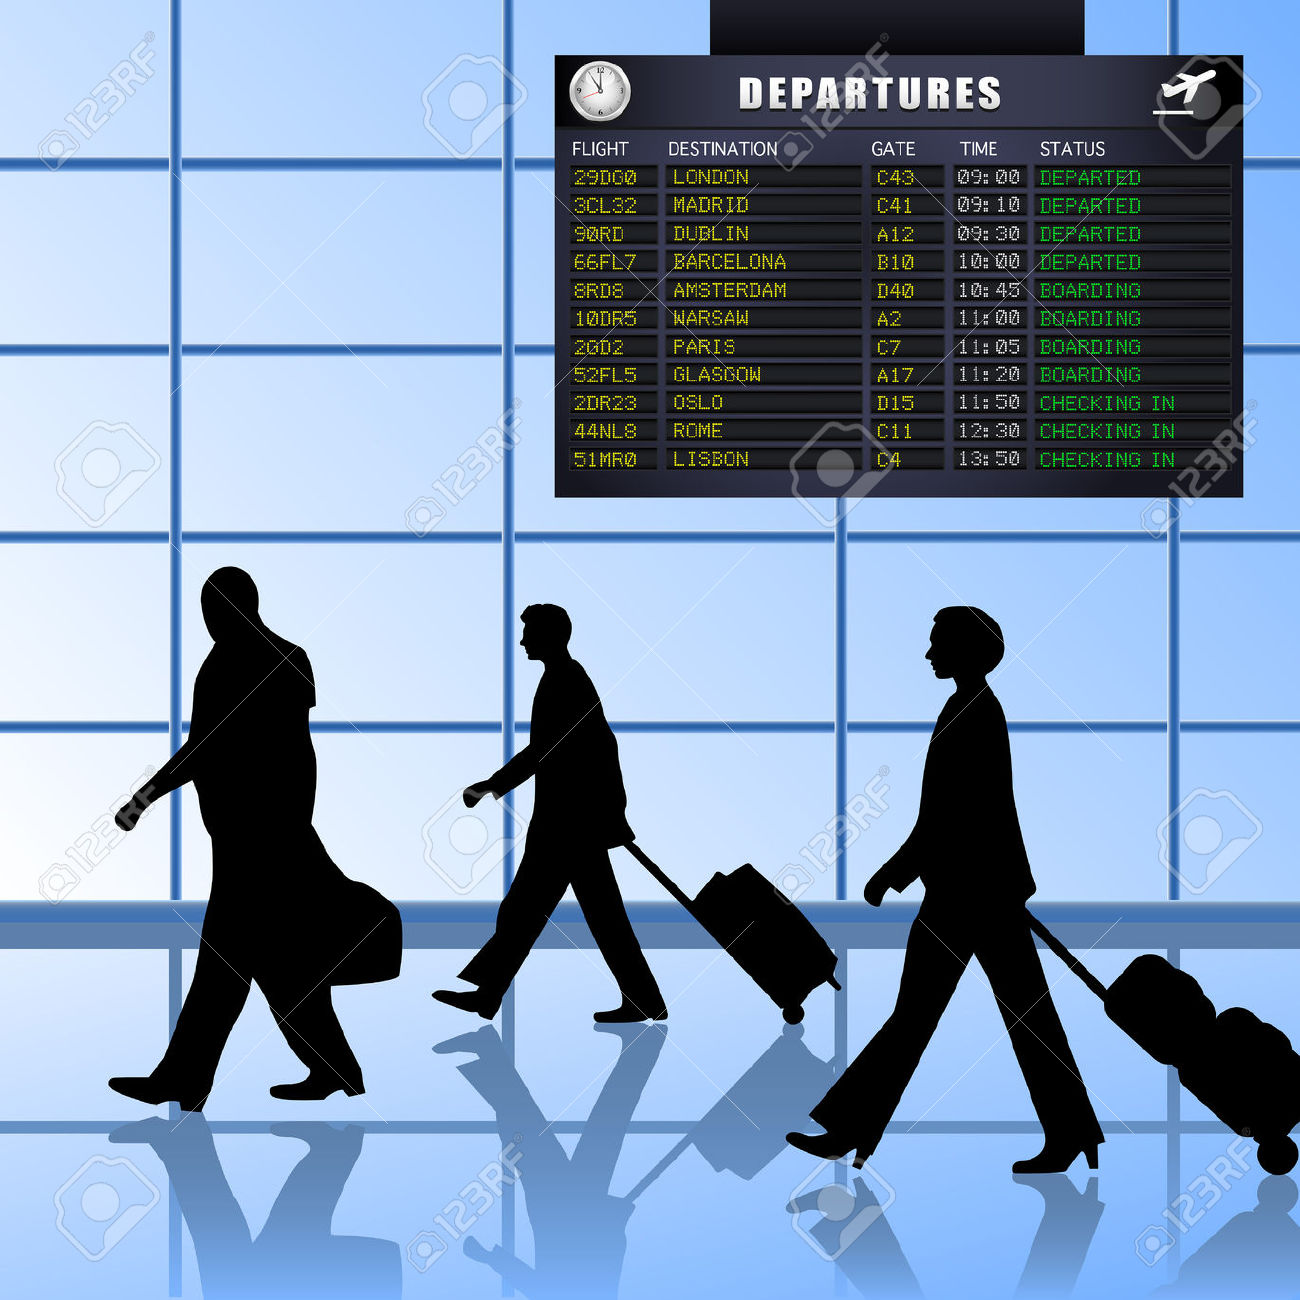 gate terminal airline. Airport clipart airport passenger